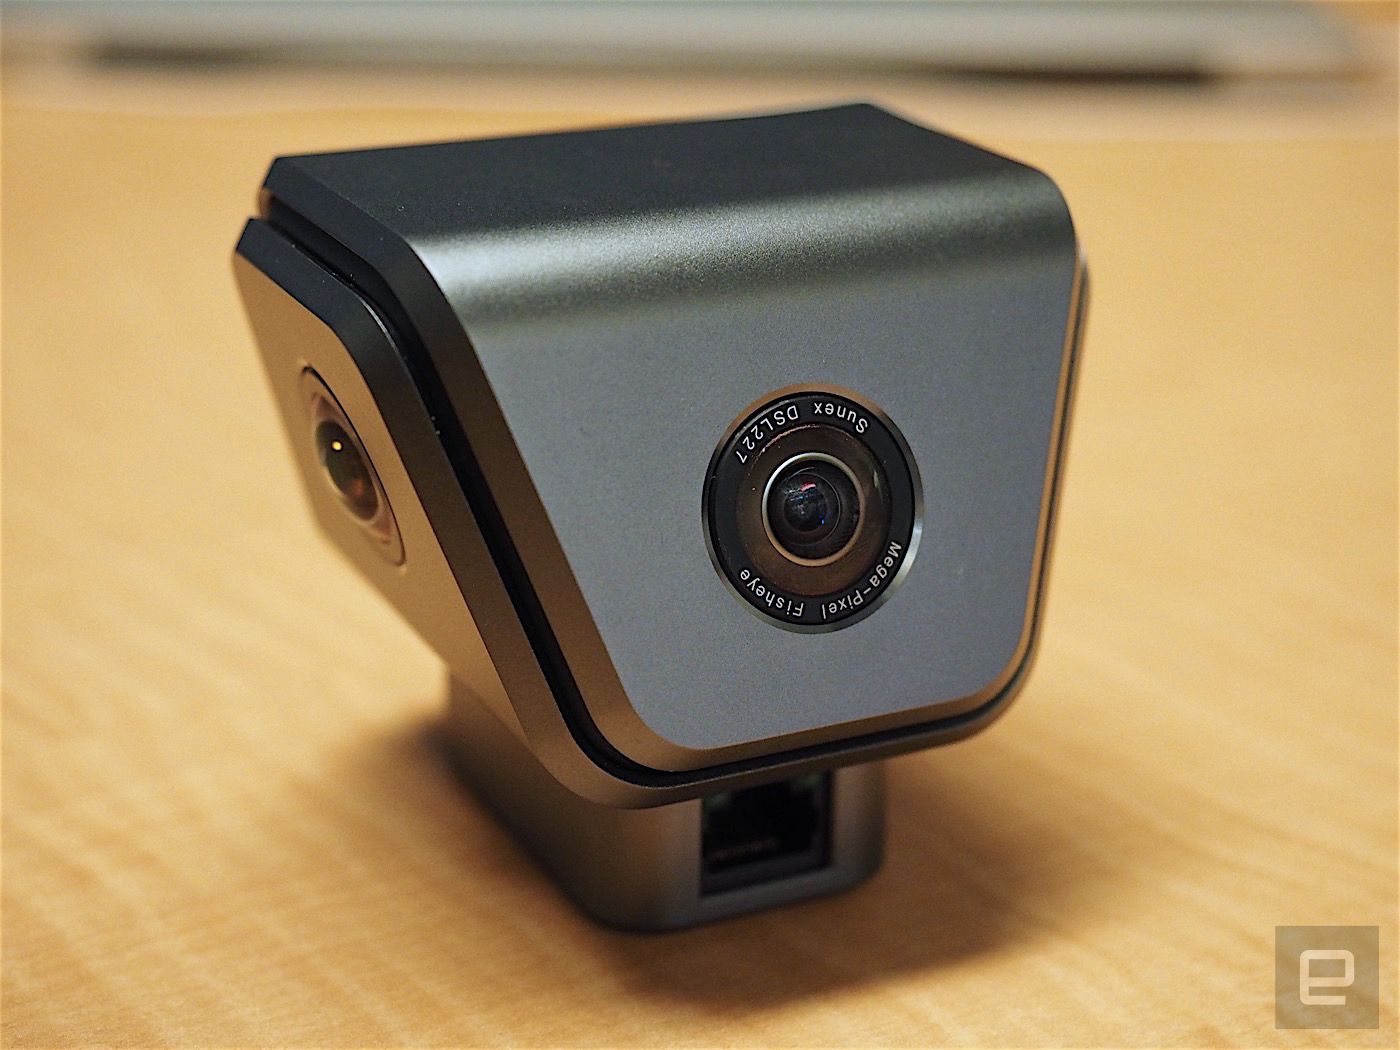 The Orah 4i camera makes live 360-degree videos a reality